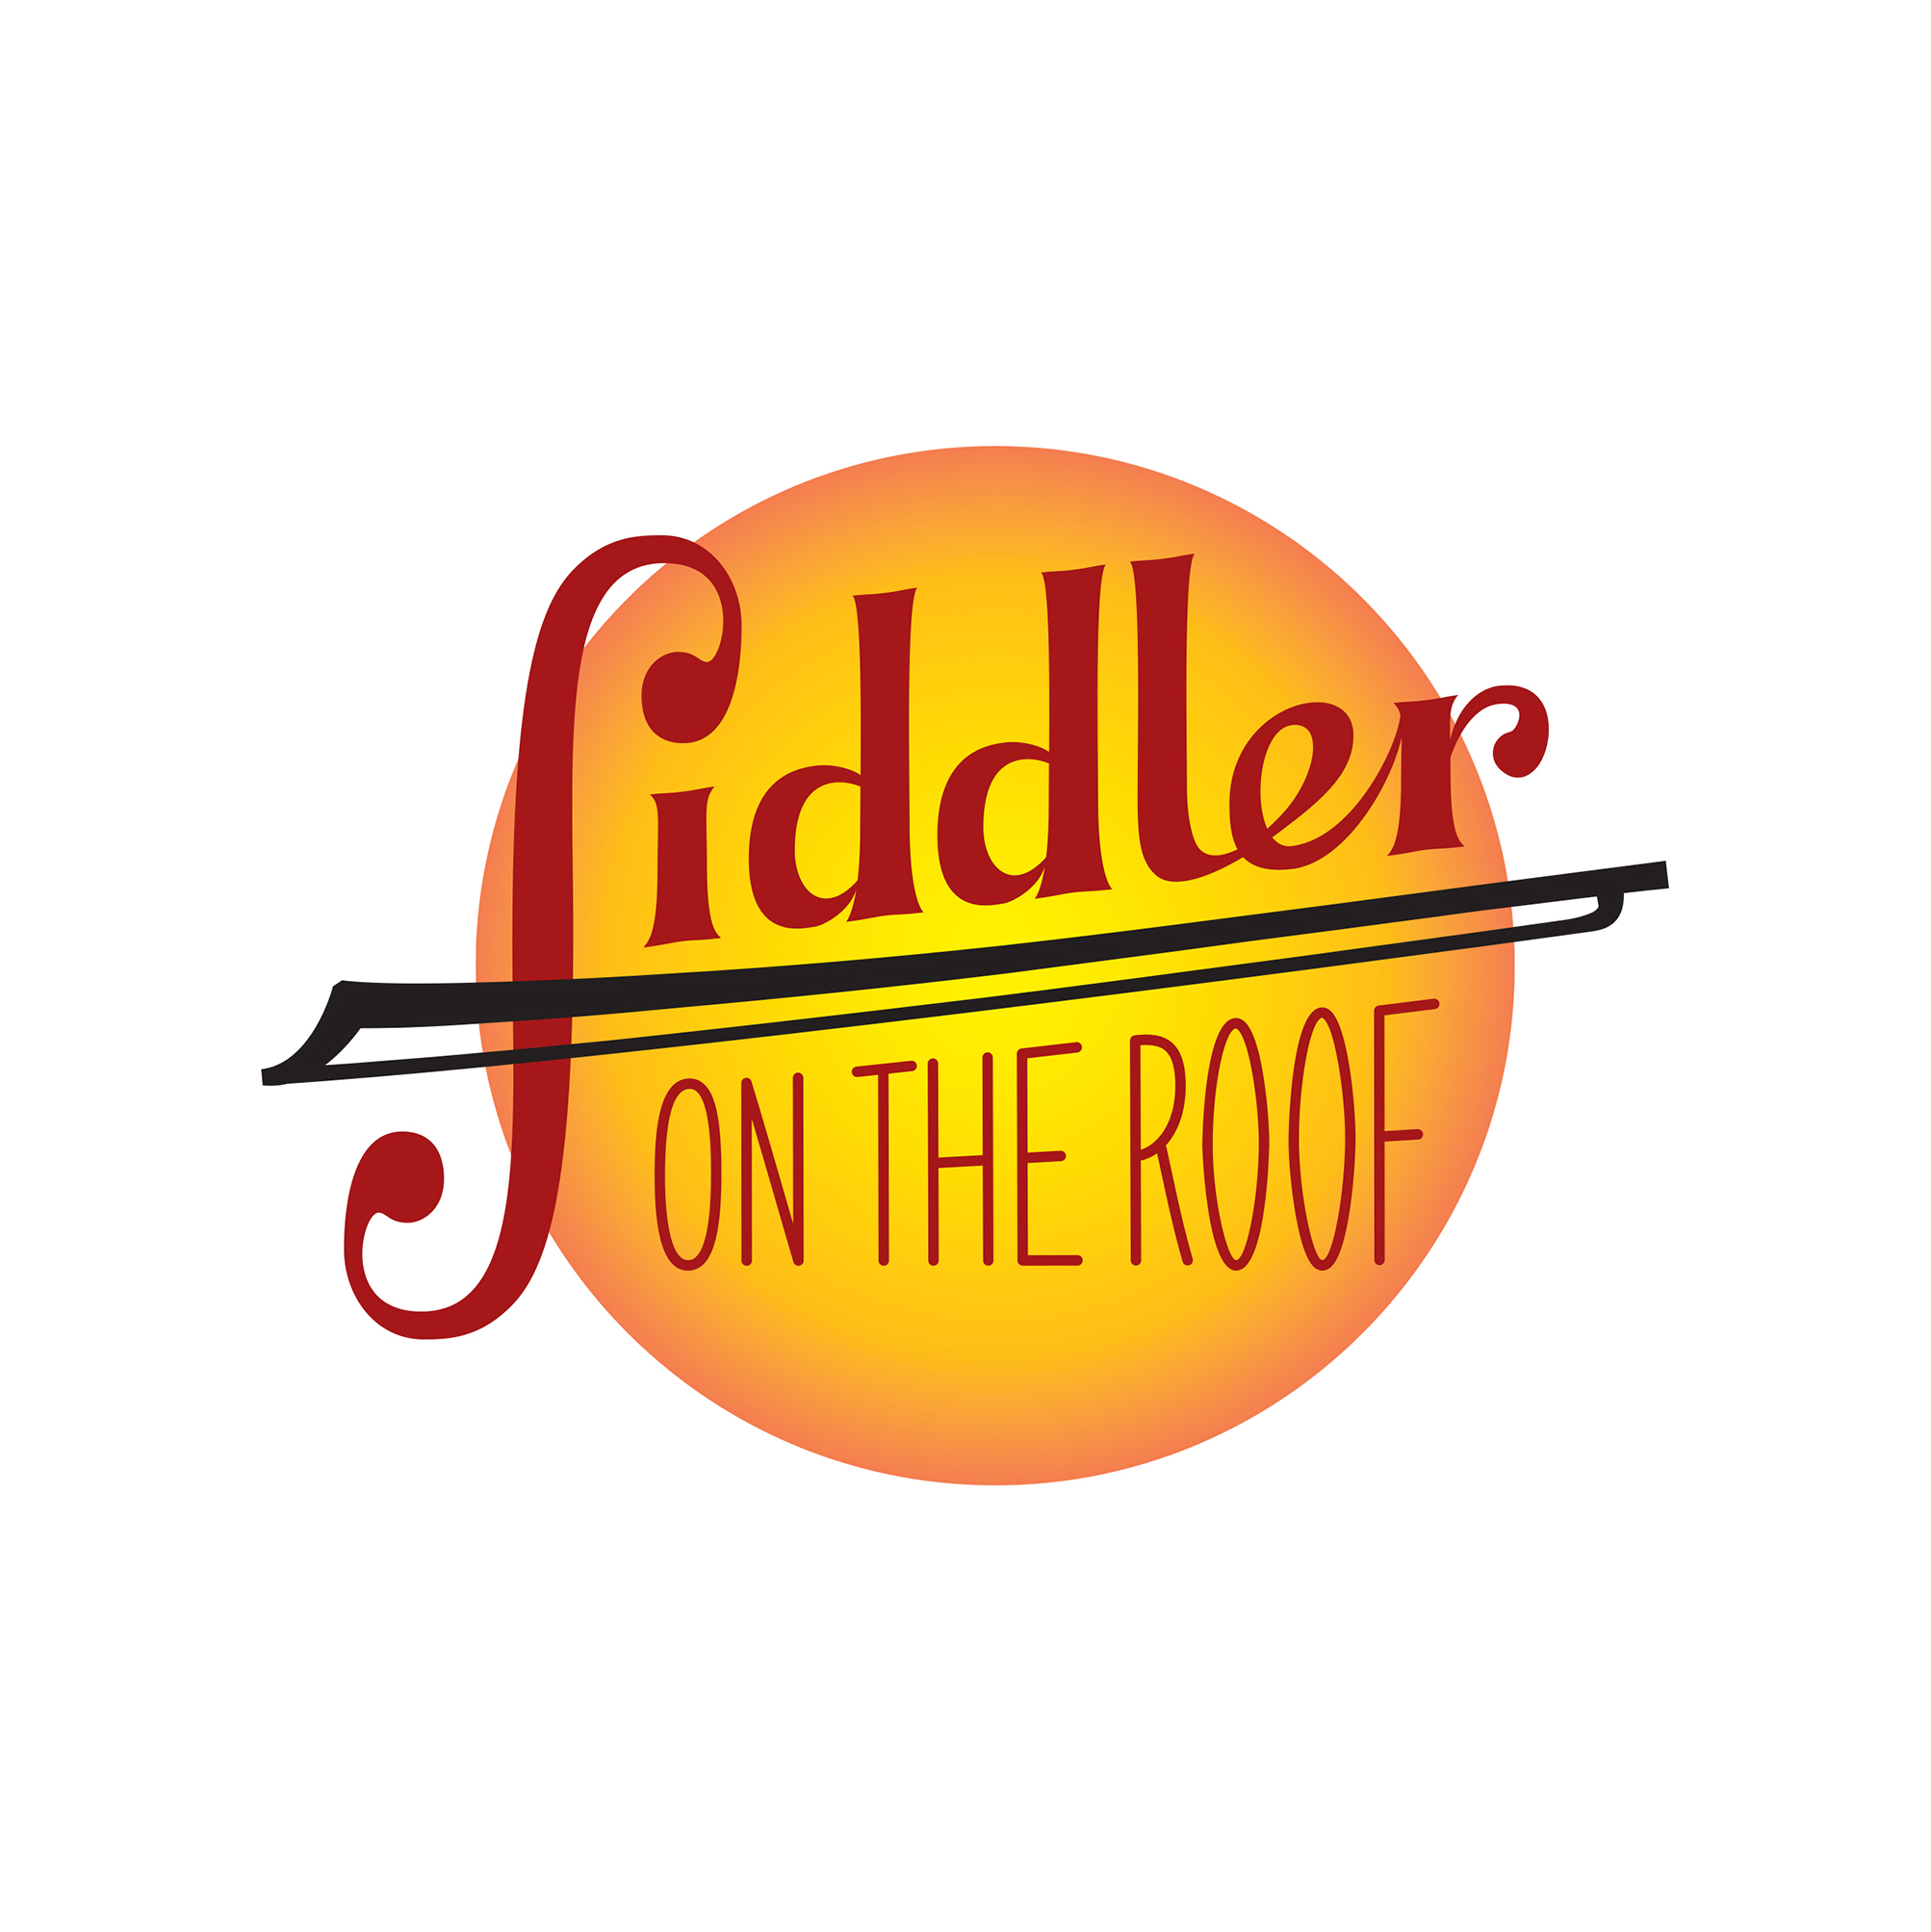 KPC's Fiddler on the Roof